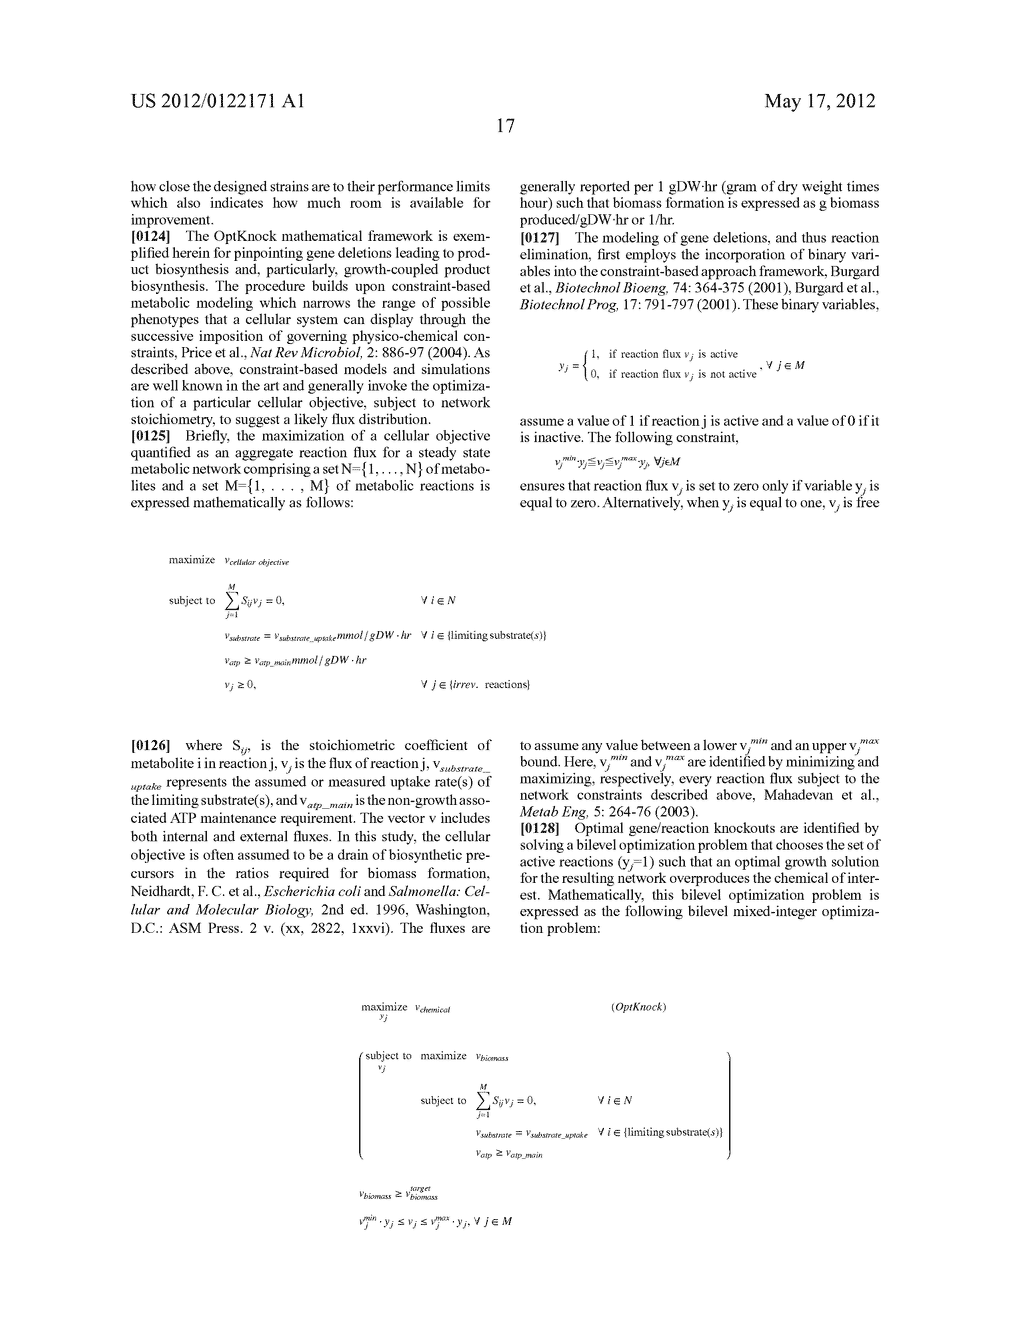 COMPOSITIONS AND METHODS FOR THE BIOSYNTHESIS OF 1,4-BUTANEDIOL AND ITS     PRECURSORS - diagram, schematic, and image 32